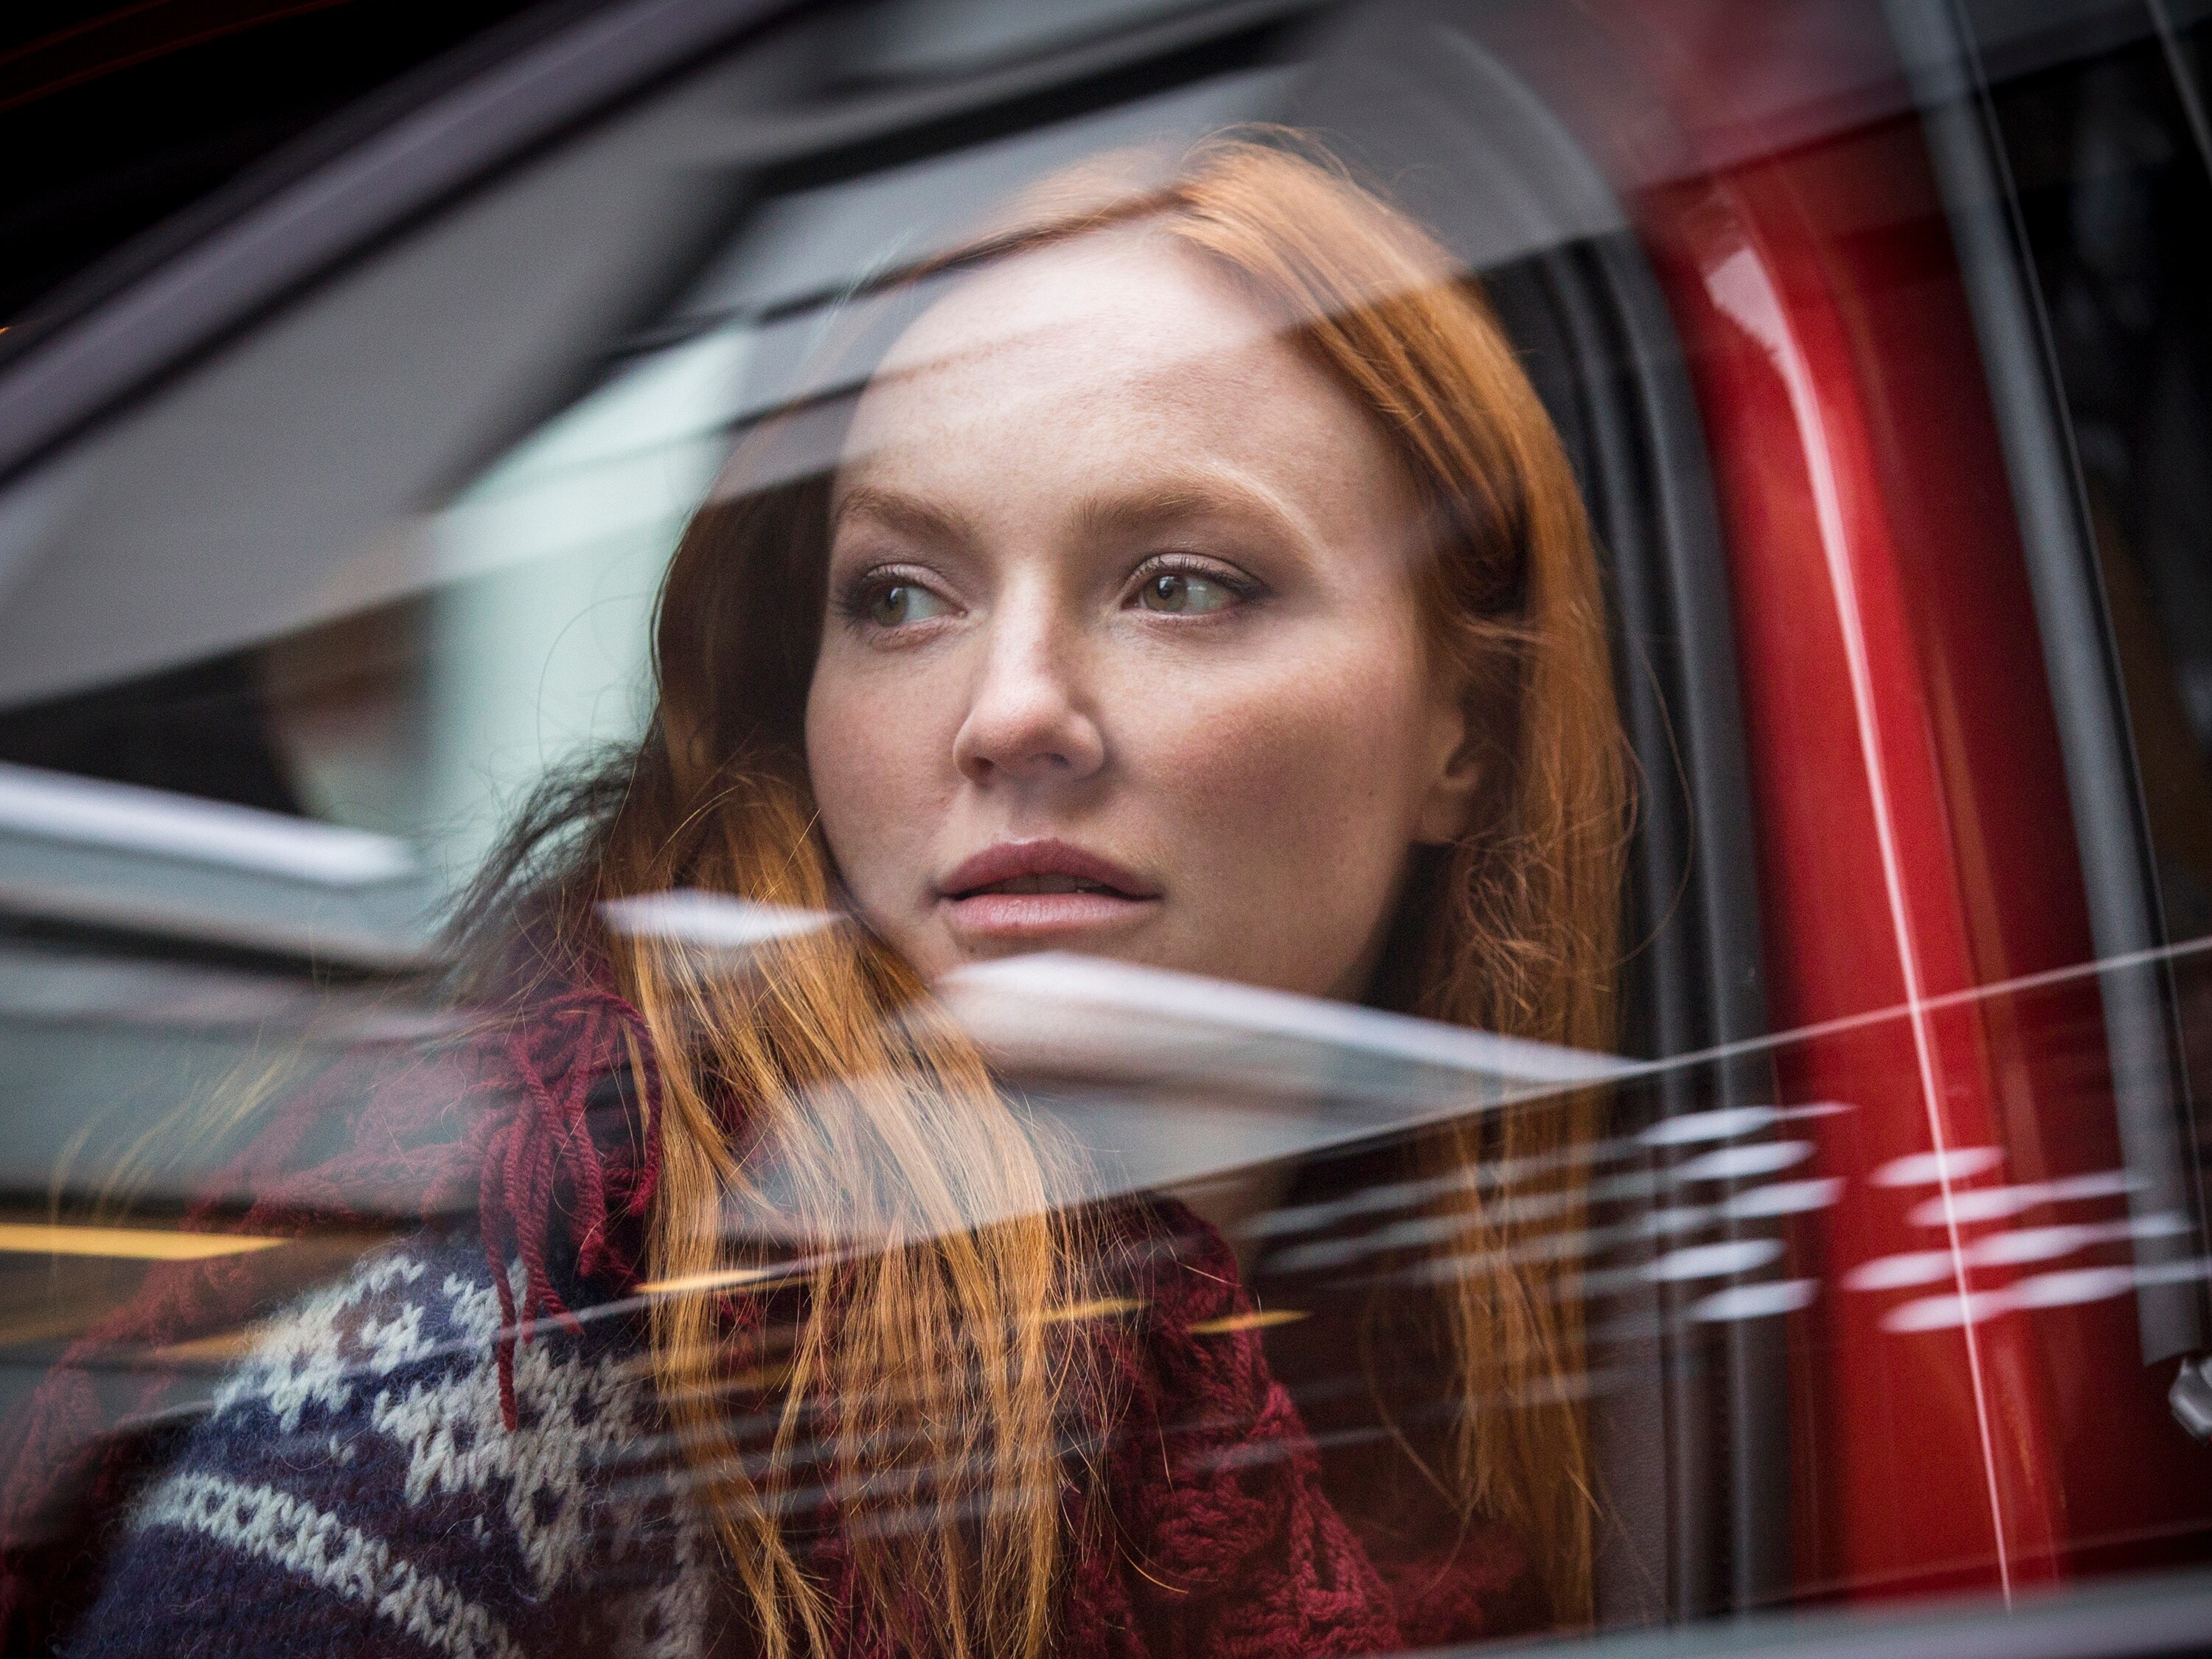 Model Sylvia Flote exiting a Volvo XC40 in Oslo